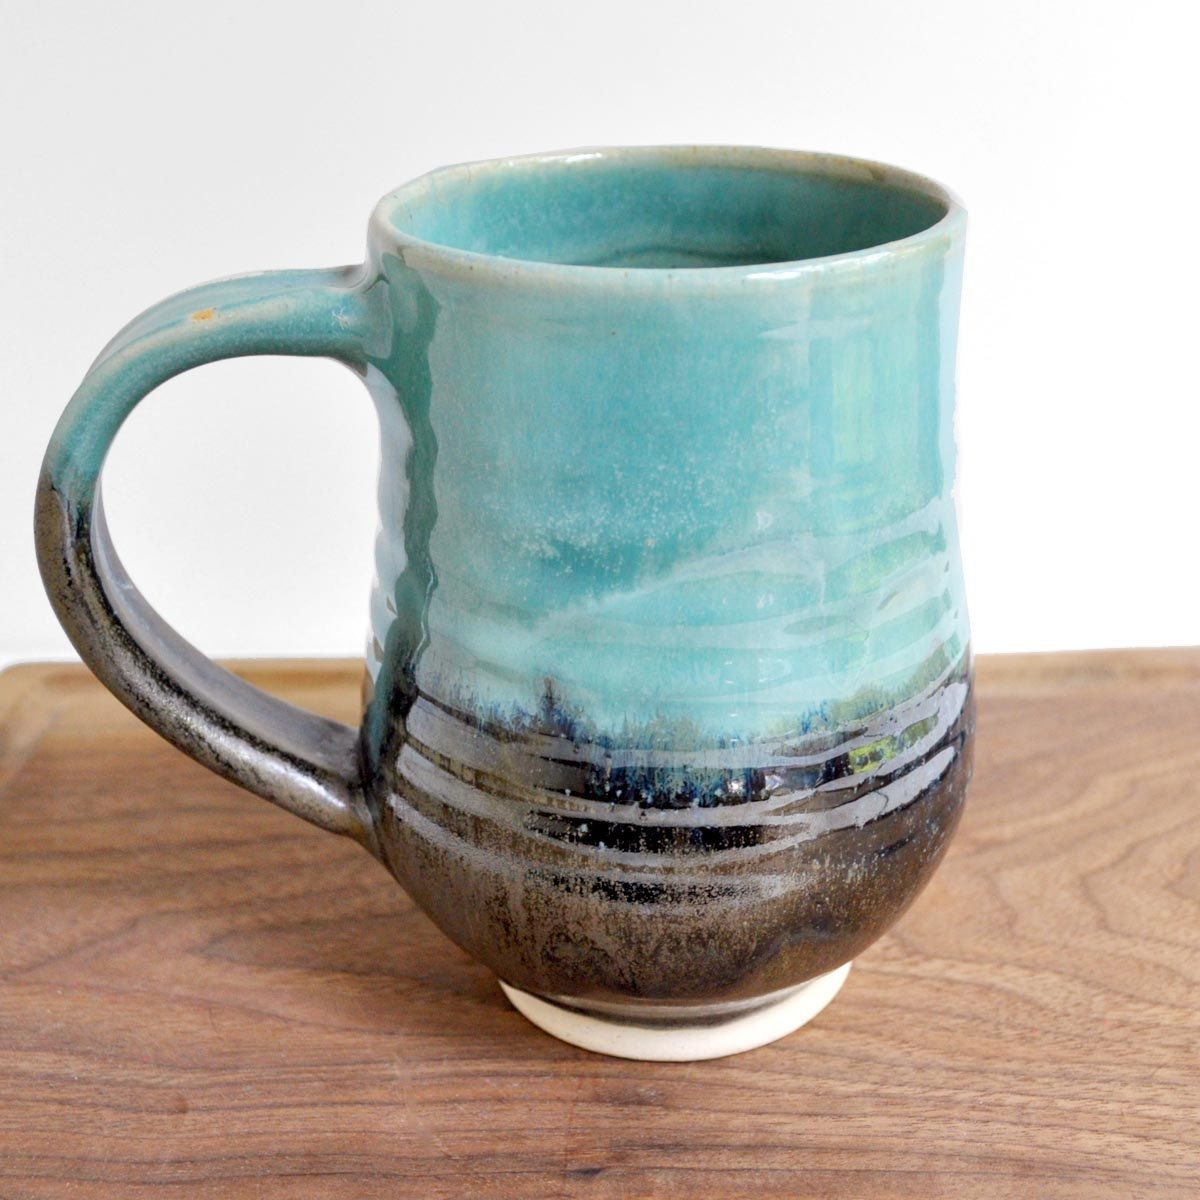 Tea Mugs For Sale Handmade Pottery Mug Or Beer Stein Seconds Sale Tea Mug